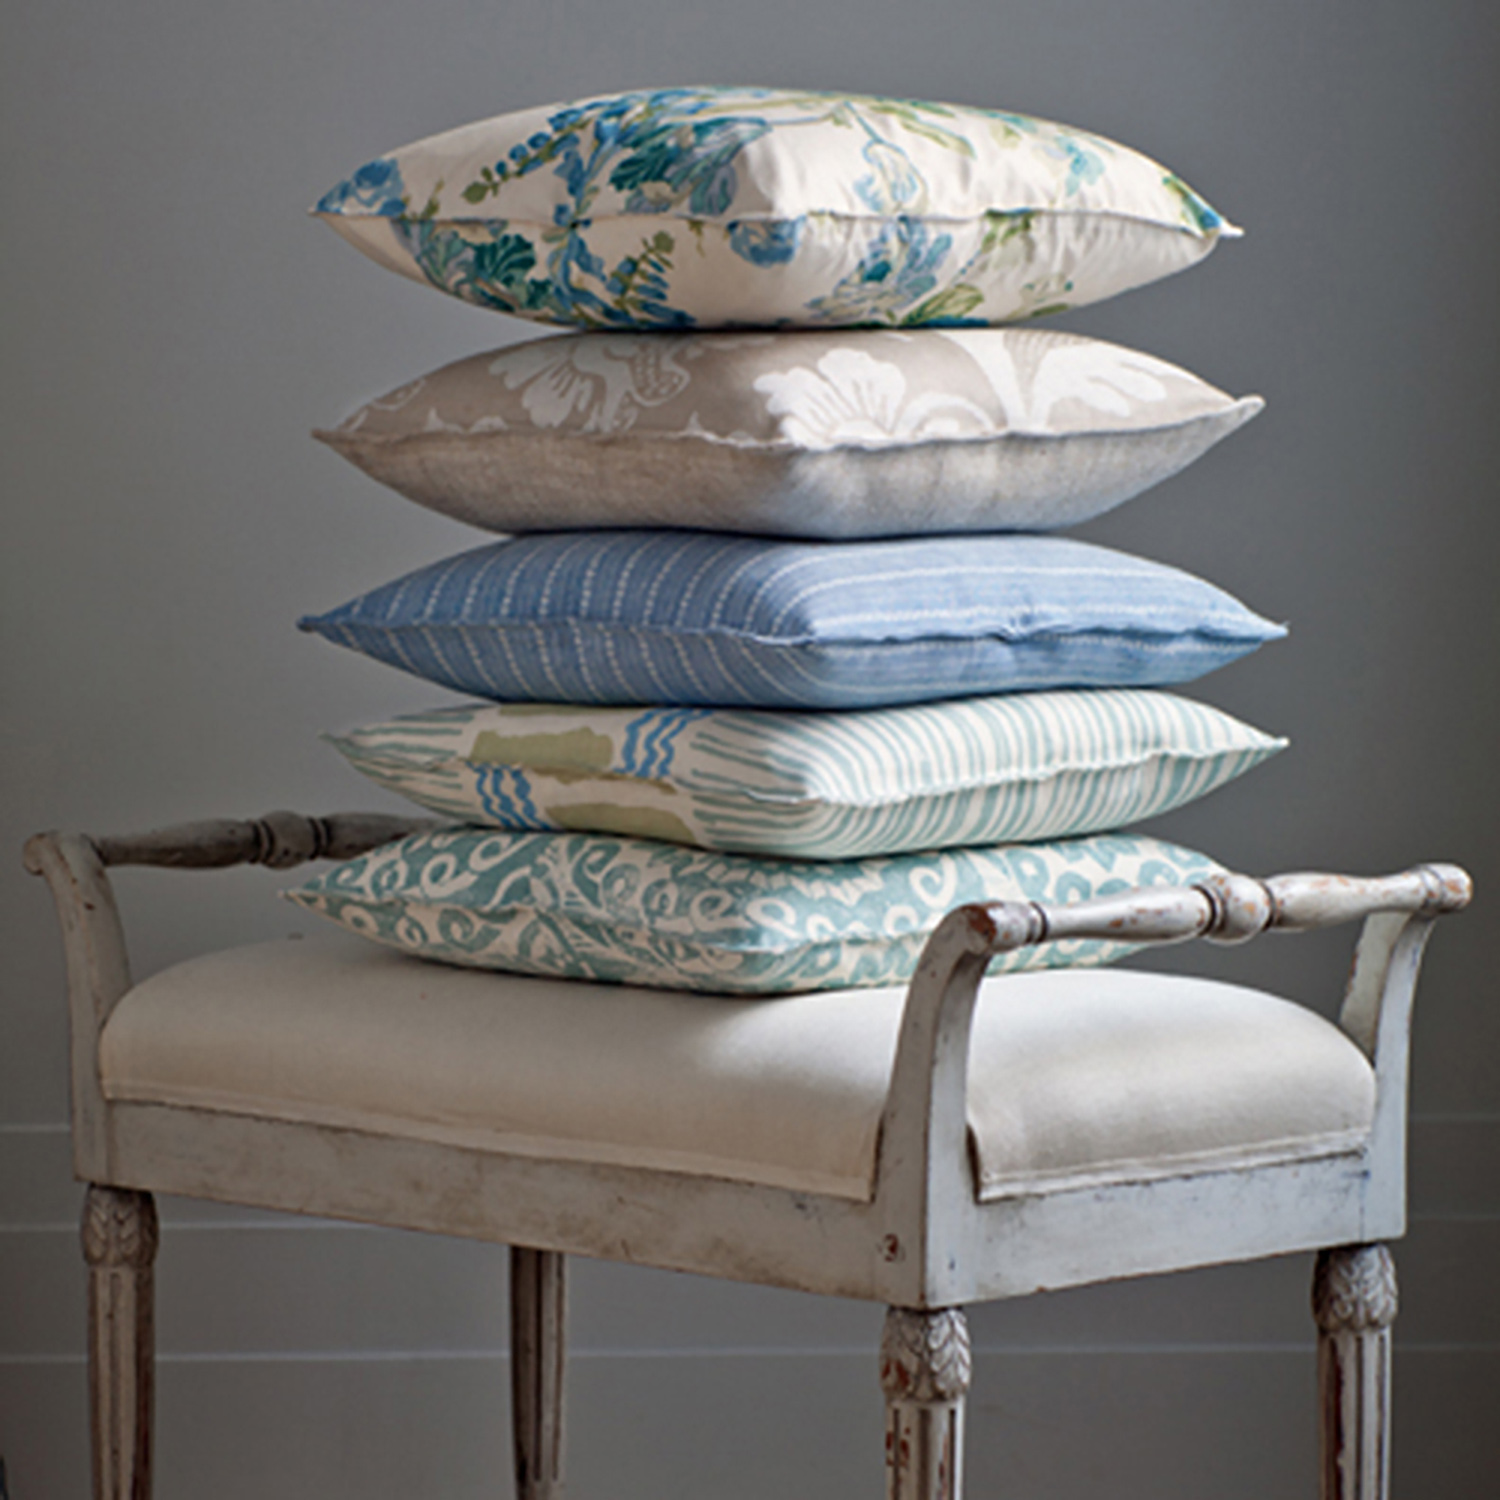 BLITHFIELD_COLLECTION_5_Pillows.jpg